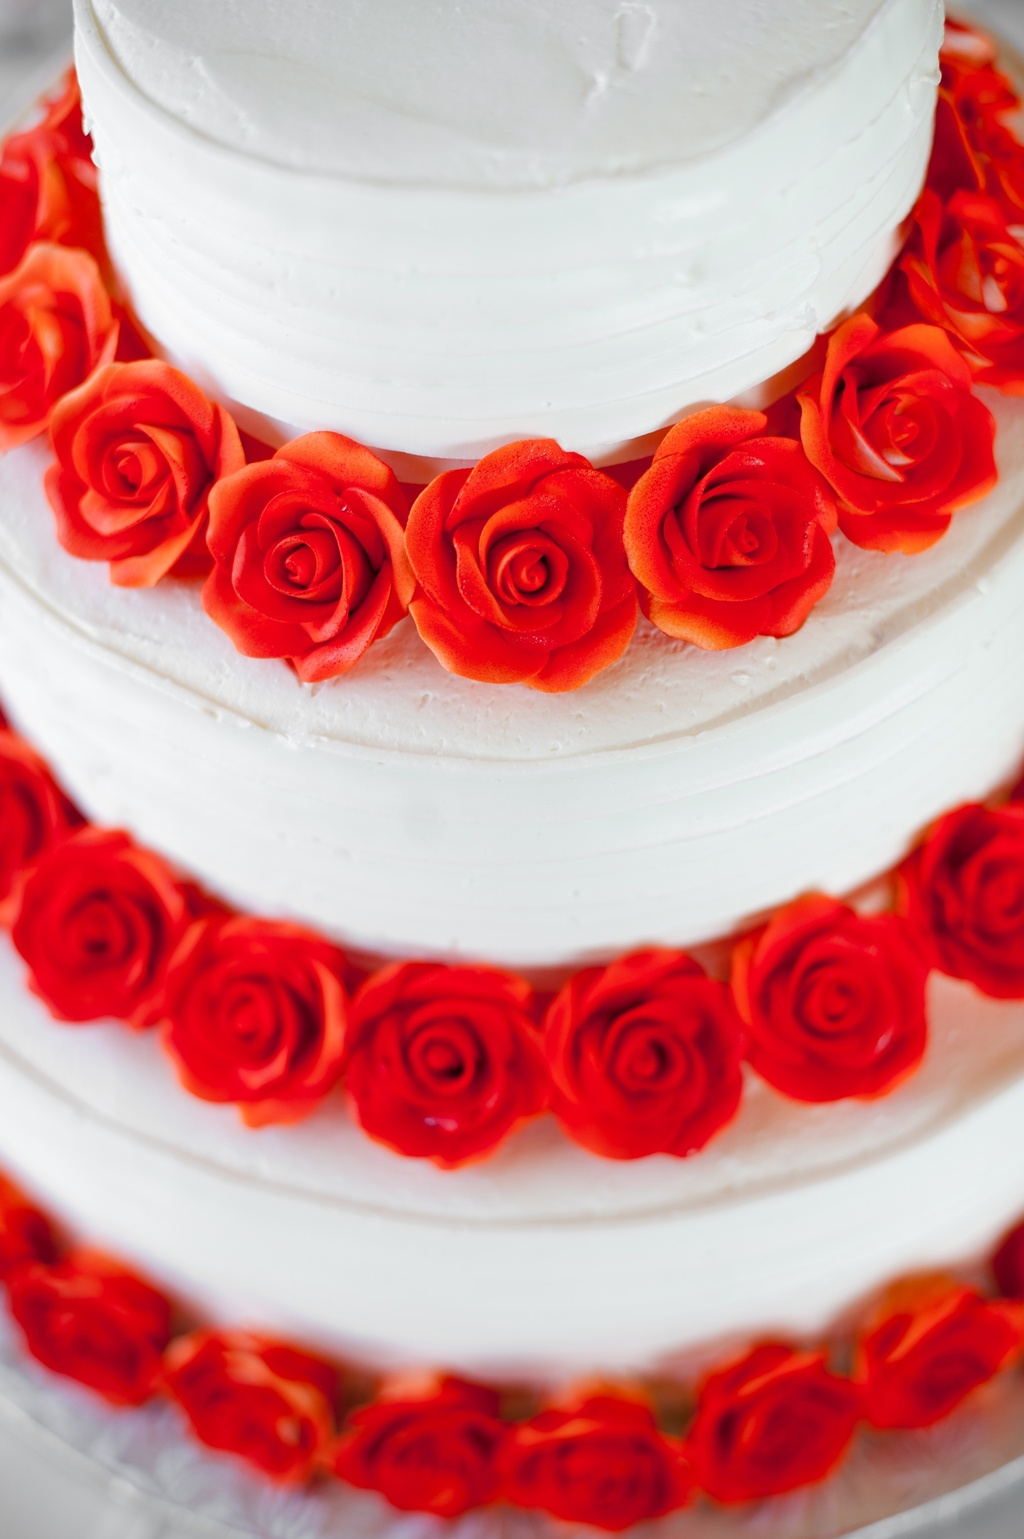 Elegant Real Wedding With Simple DIY Details White Cake Red Roses